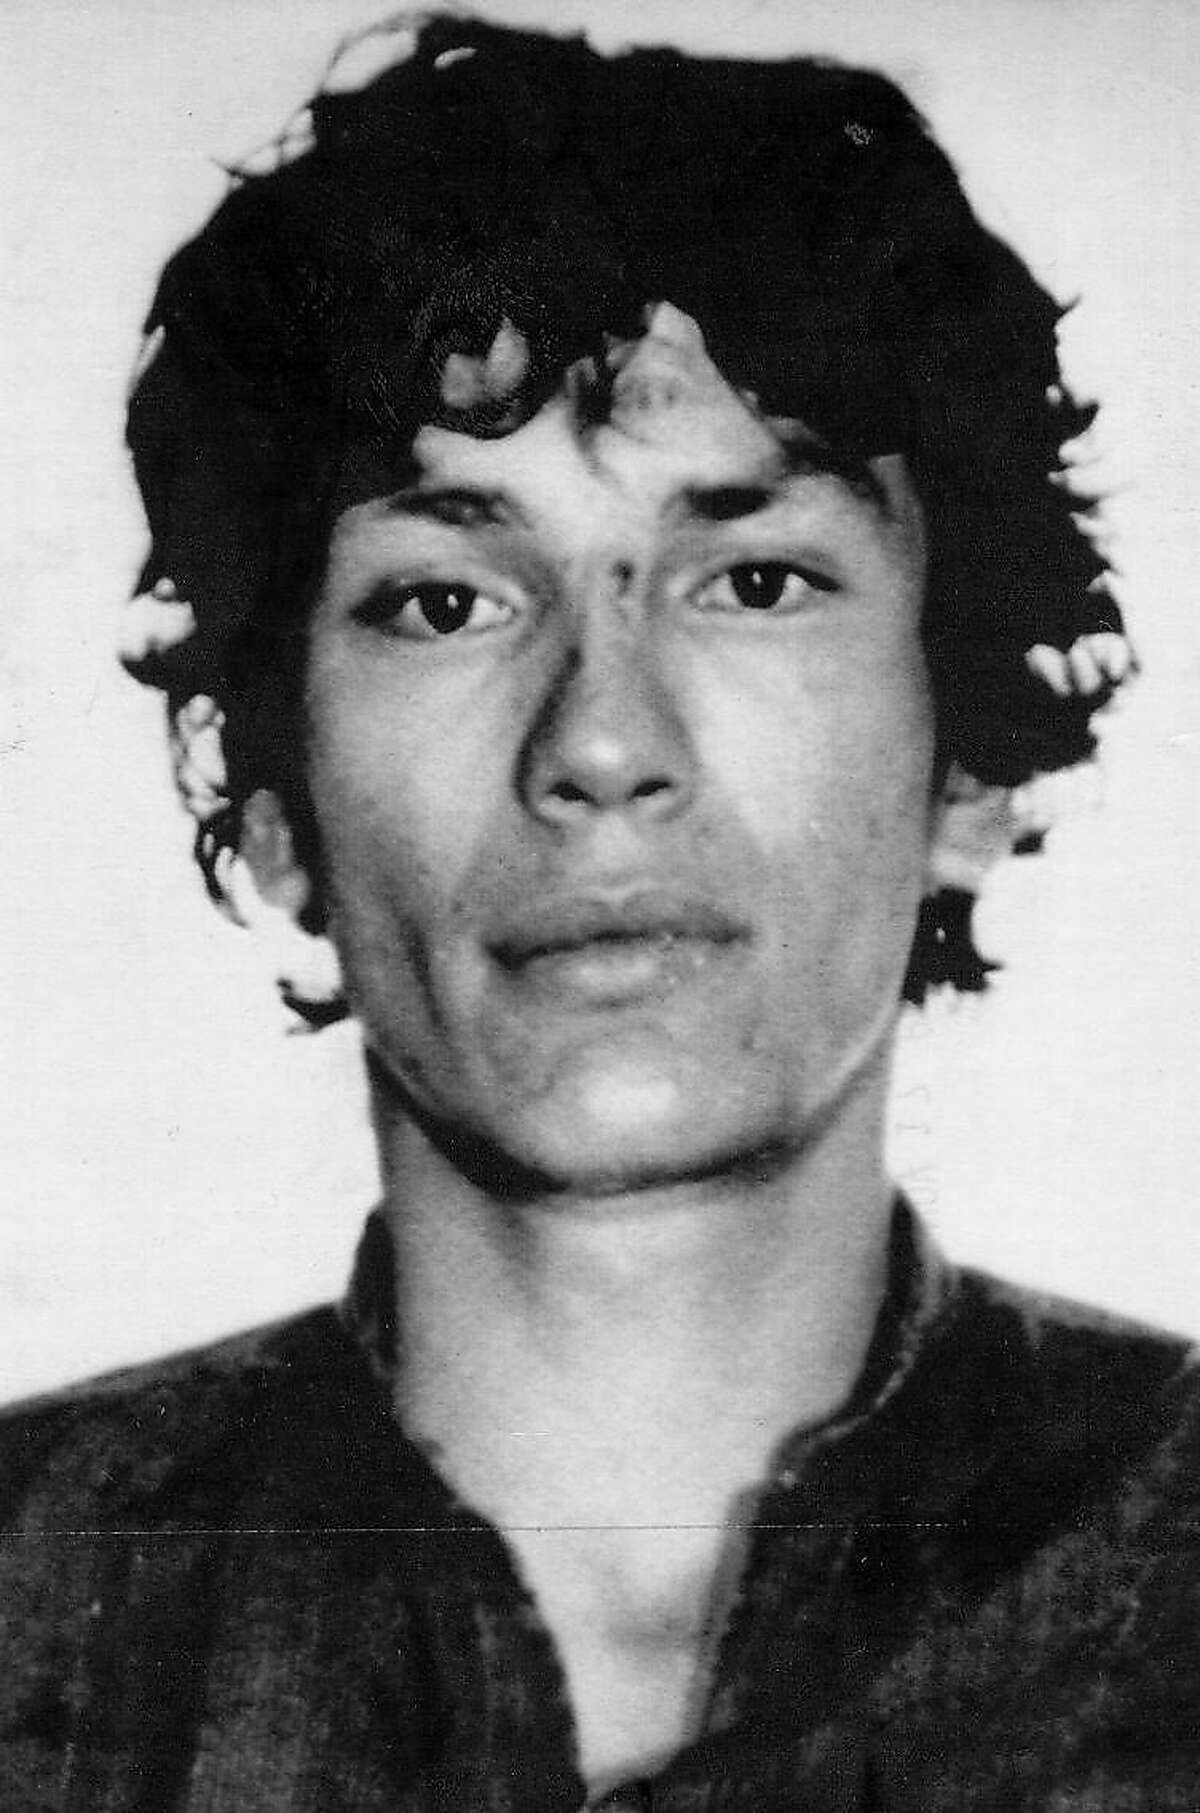 RICHARD RAMIREZ - Police photo of Richard Ramirez, 25, who police identify as a suspect in the Night Stalker slayings in California. The man is believed to be responsible for at least 16 deaths and more than 20 assaults in California. Ramirez, later convicted, was captured by residents of an East Los Angeles neighborhood on August 31, 1985. (PHOTO DATED 08 30 1985) CREDIT: ASSOCIATED PRESS_SOURCE: EXPRESS-NEWS FILE PHOTO